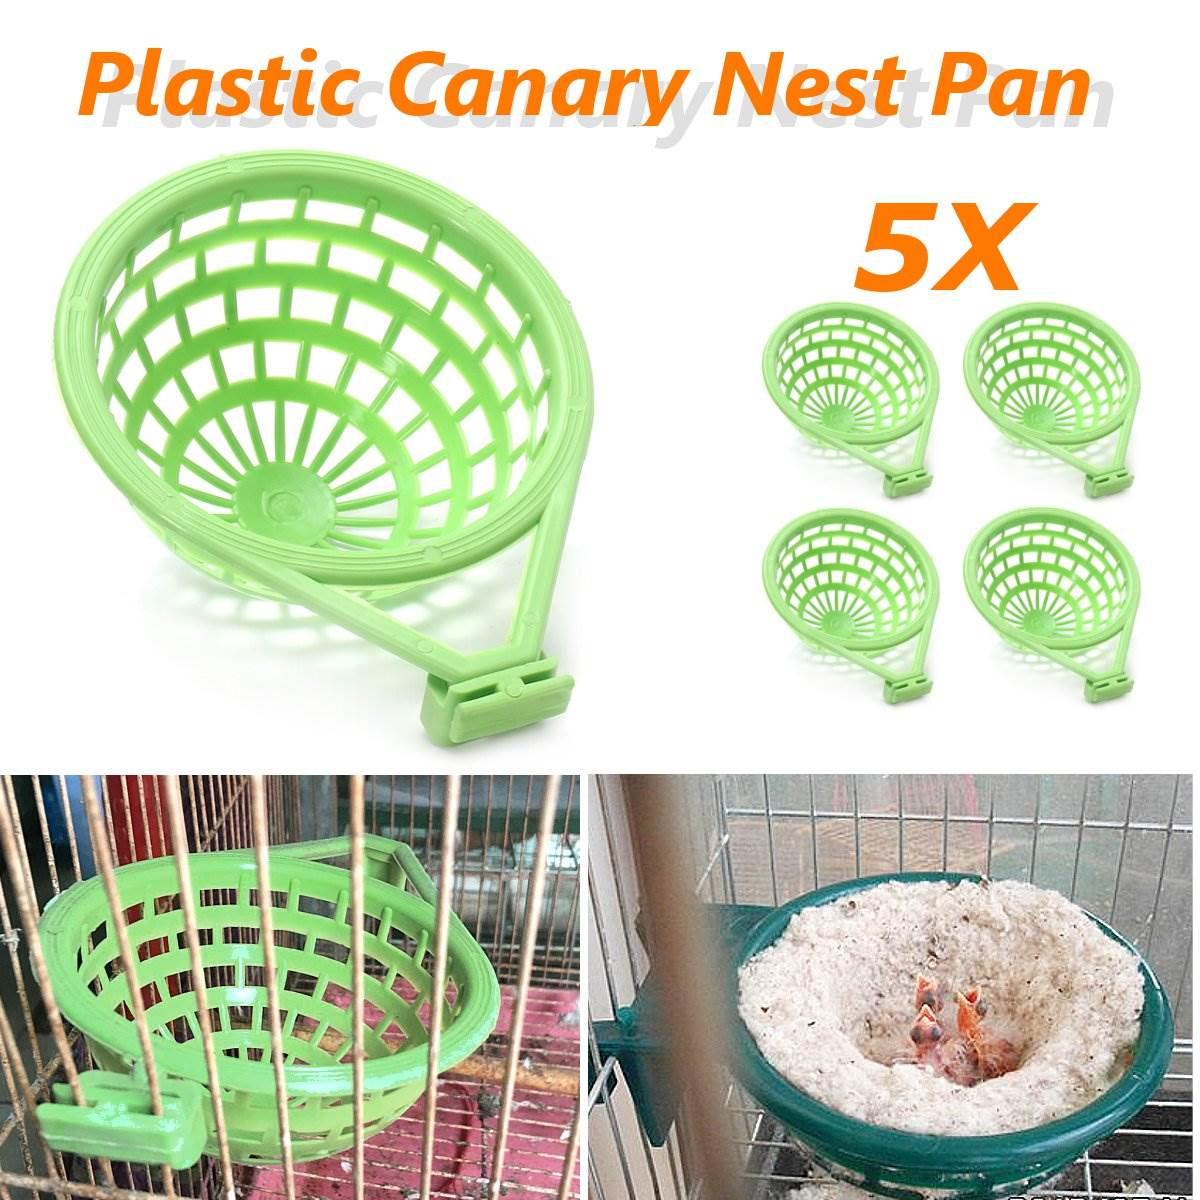 5Pcs/Lot Xxxl Palstic Canary Nest Cage Pan Liner For Nesting Canaries Finches Budgies Pet Birds Hatching Tools Supplies